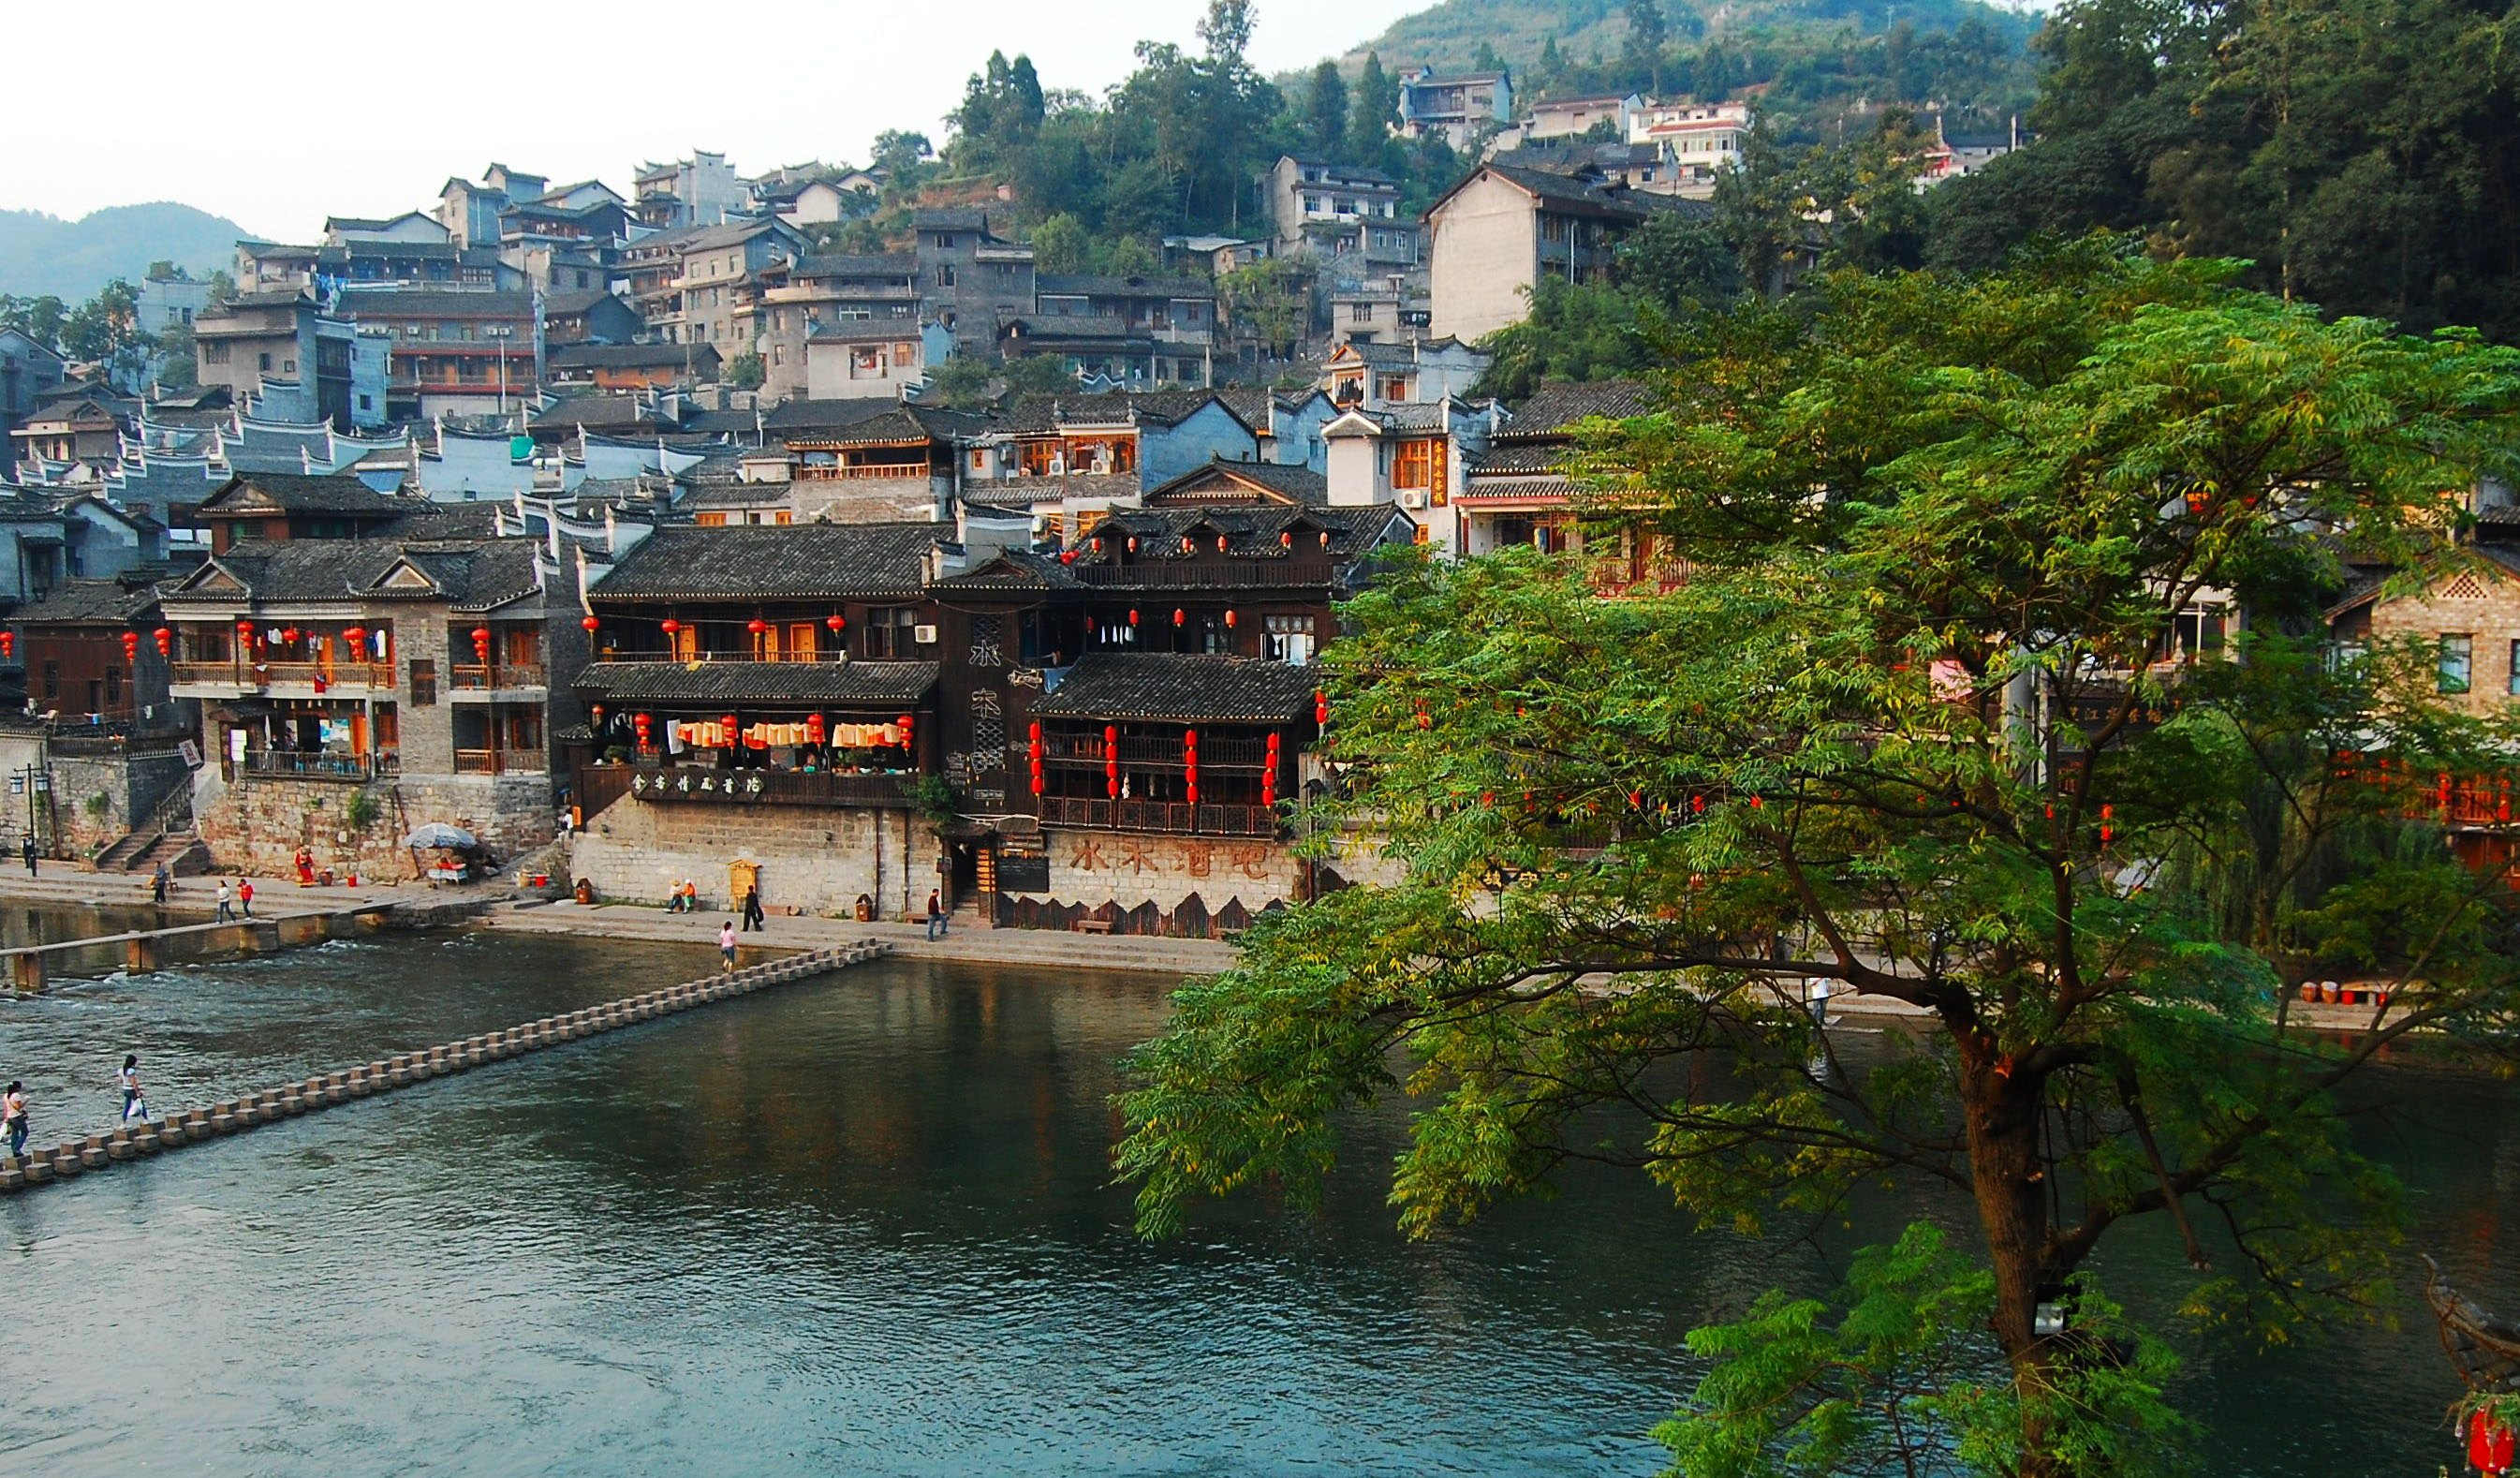 Fenghuang (Phoenix) China  city pictures gallery : Phoenix – FengHuang 鳳凰 Ancient City, China | retireediary